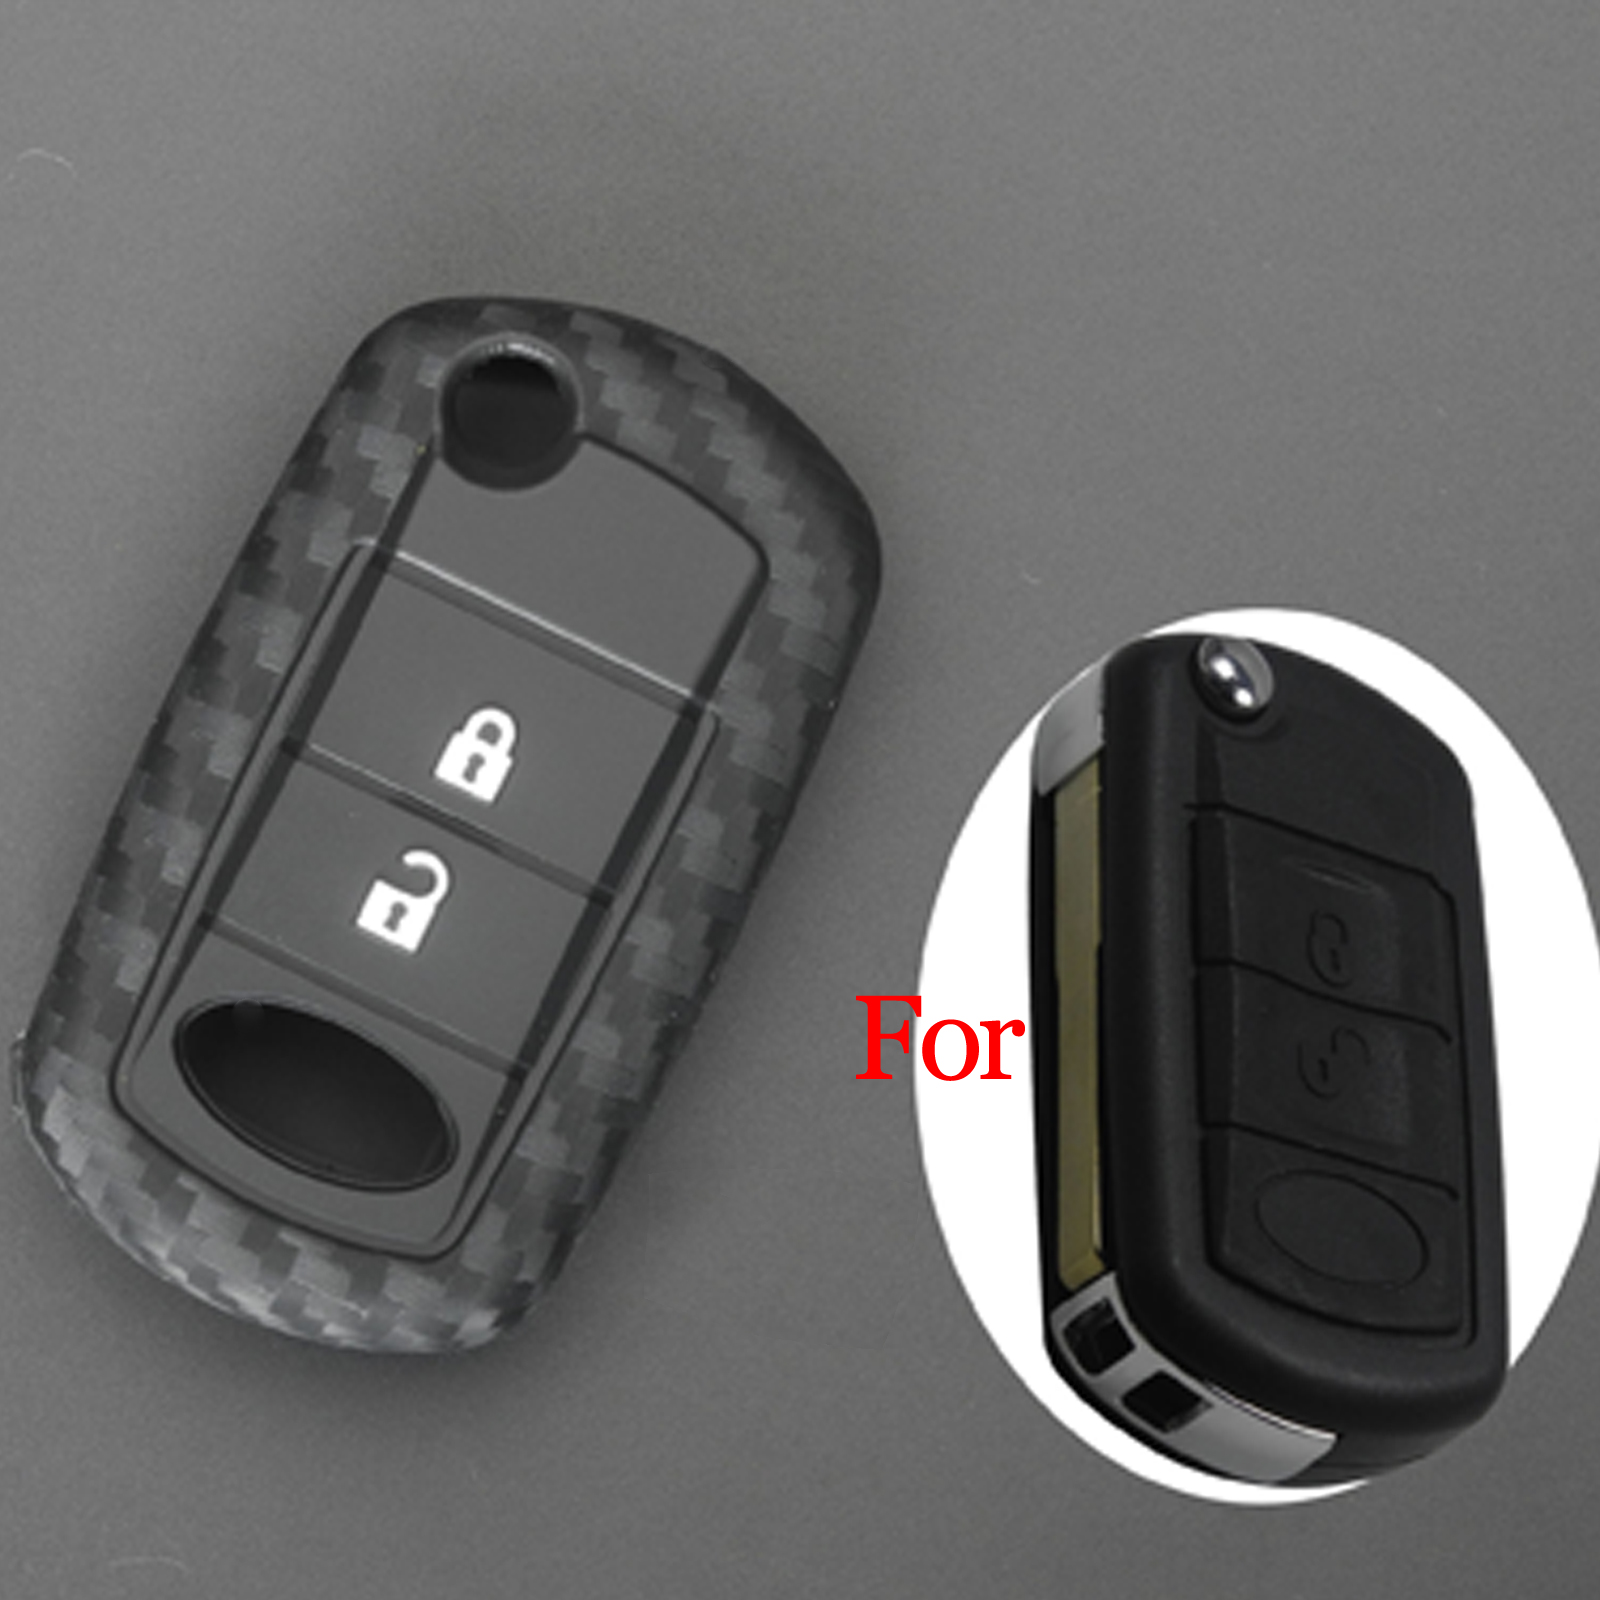 Jingyuqin Remote Silicone + Carbon Fiber Car Key Case Cover For Land Rover Range Rover Discovery Sport LR3 3 Buttons Smart Key